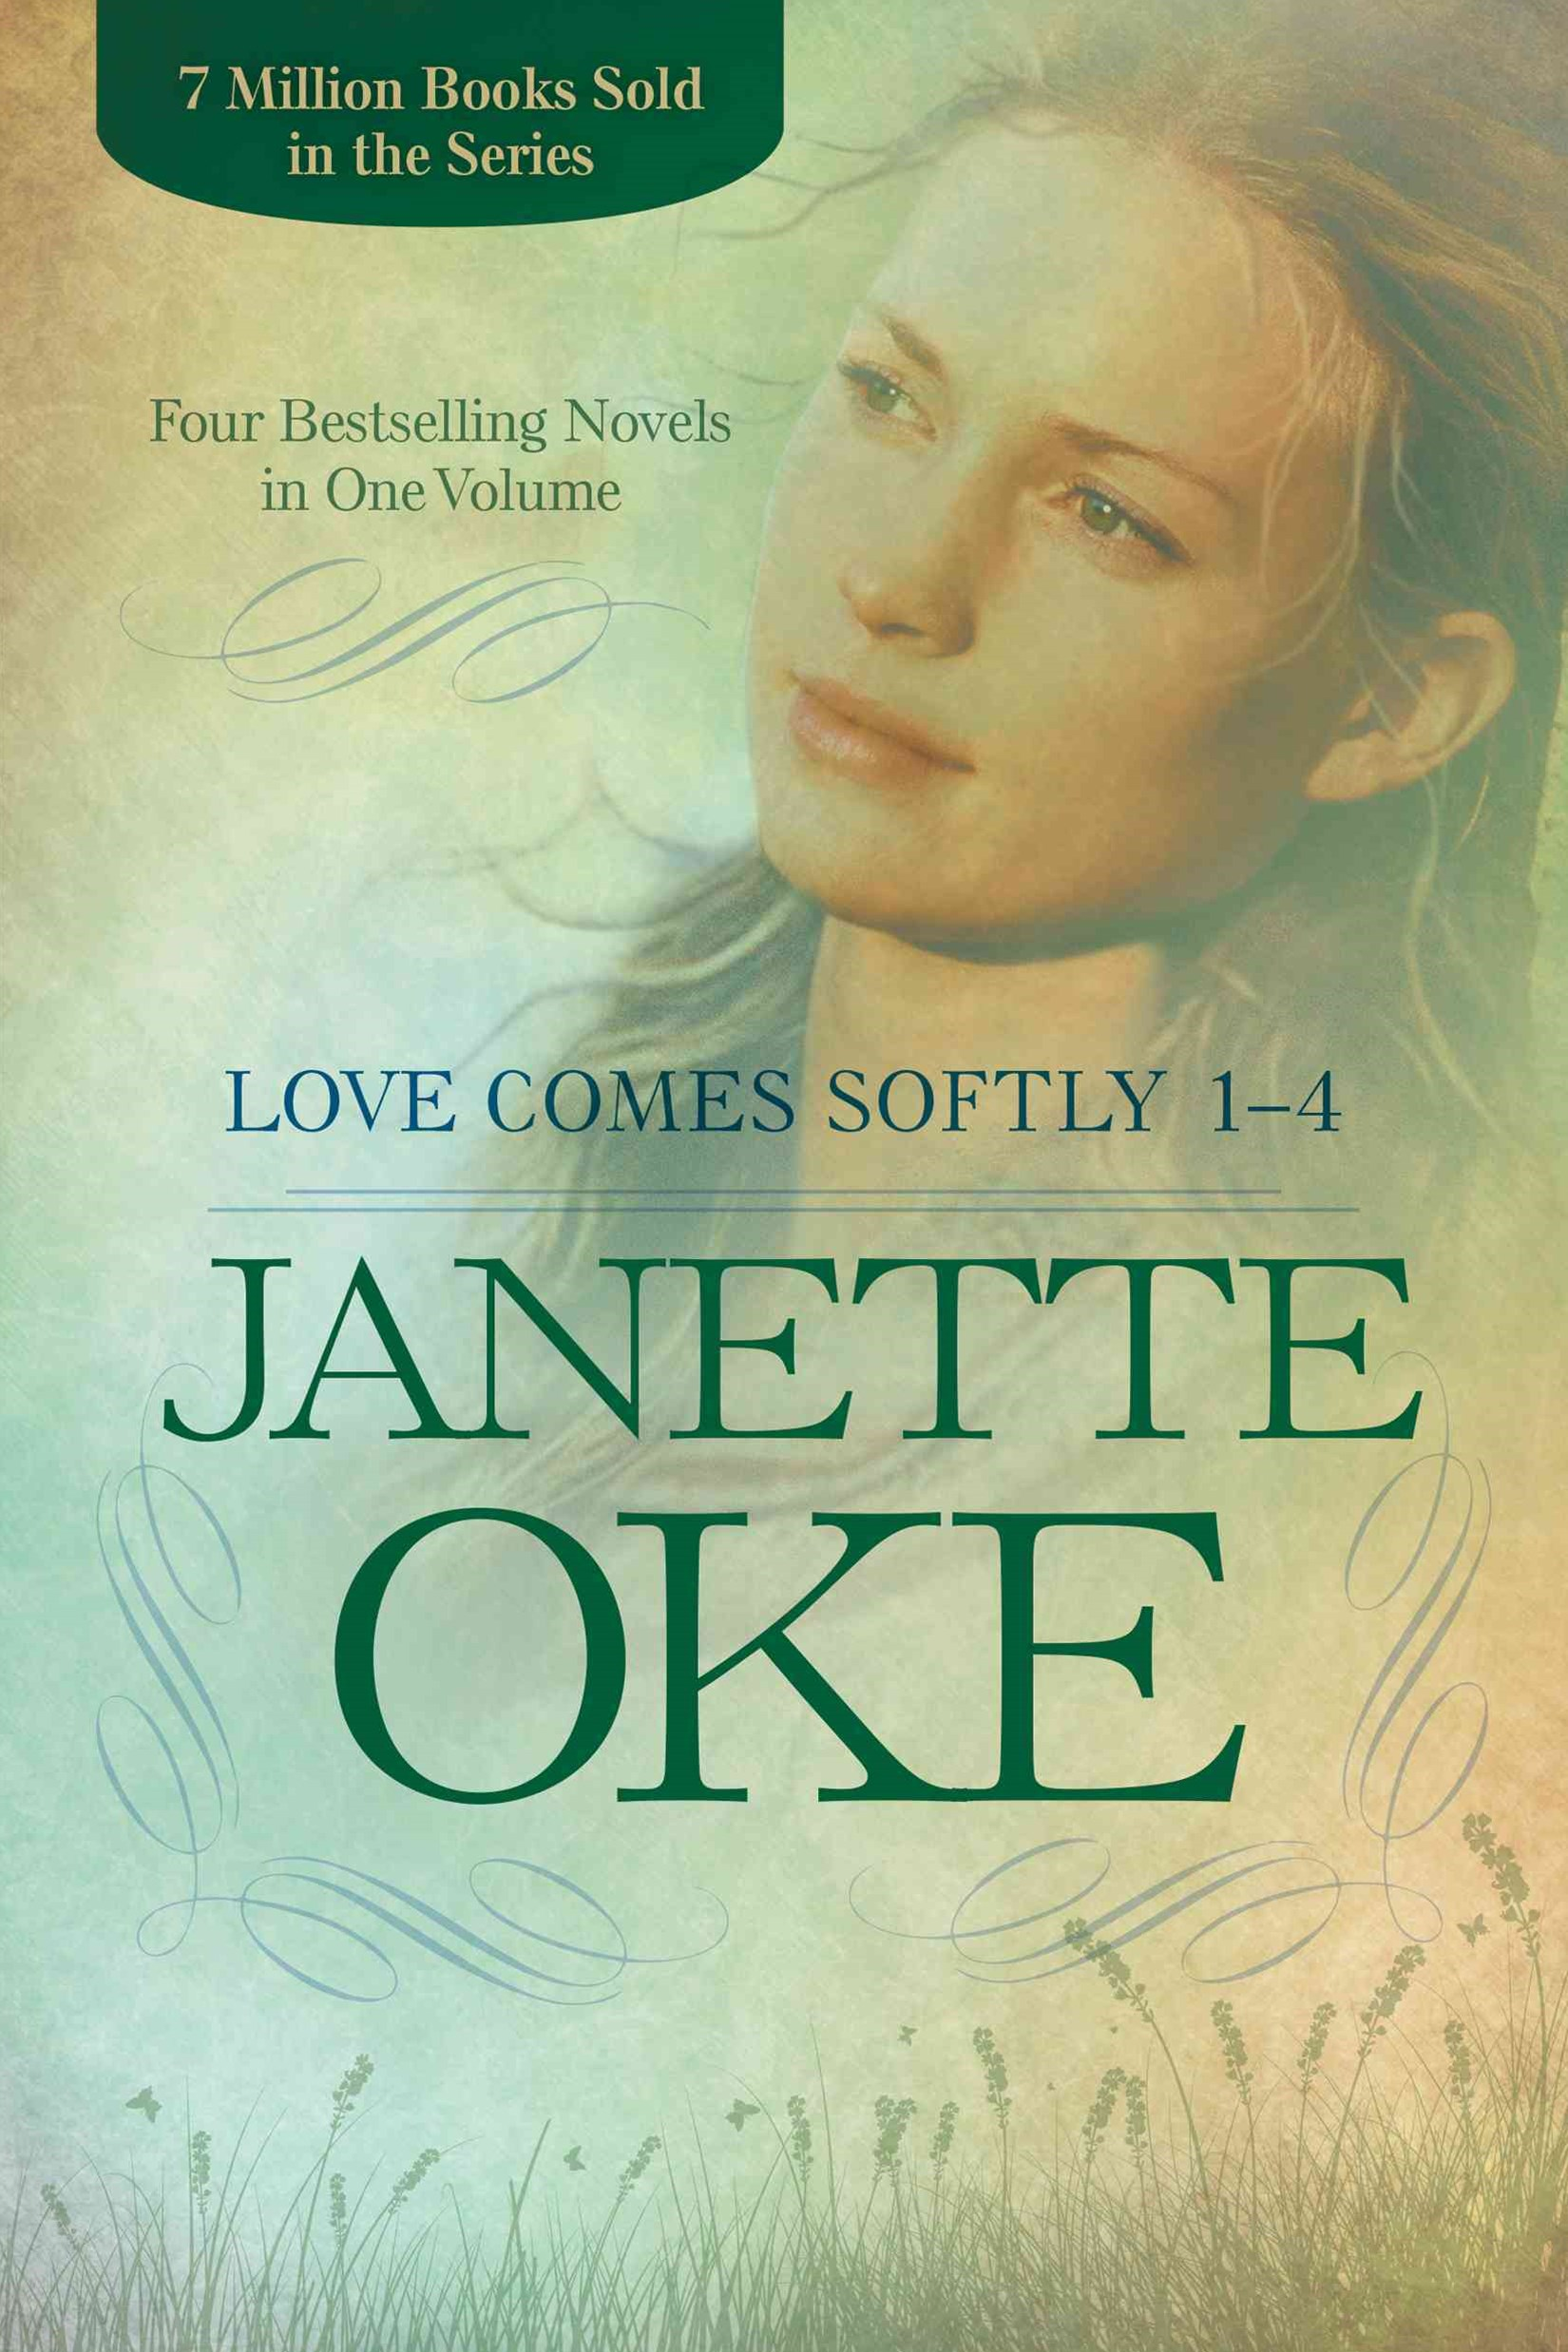 The Love Comes Softly 1-4